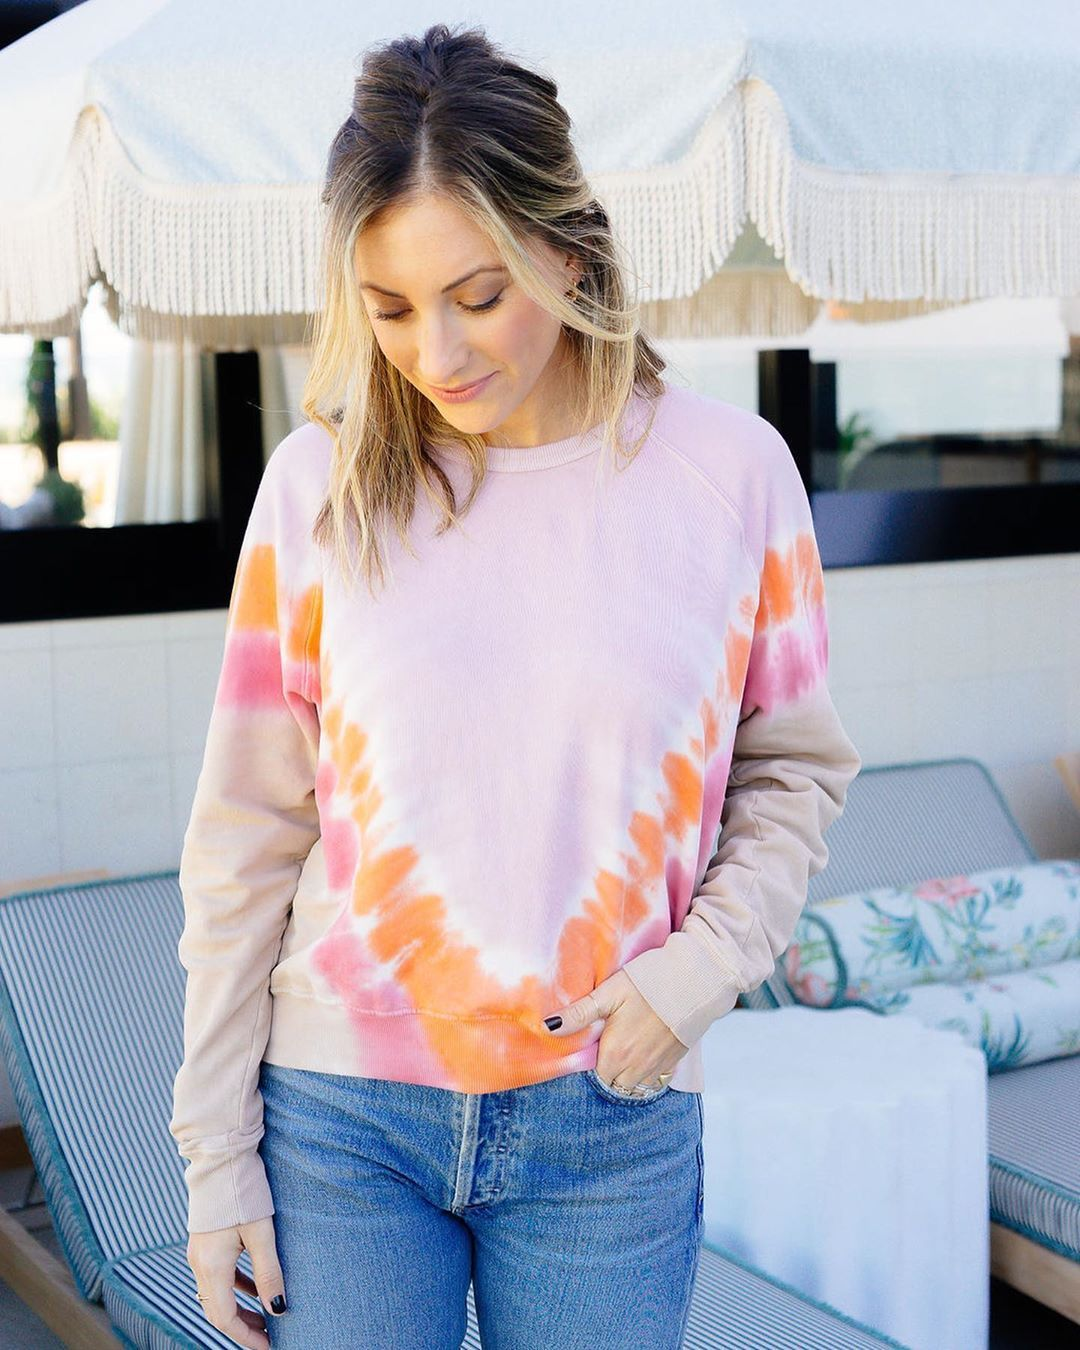 She S Live Tie Dye Sweatshirt Cupcakes And Cashmere Spring Summer Fashion [ 1350 x 1080 Pixel ]